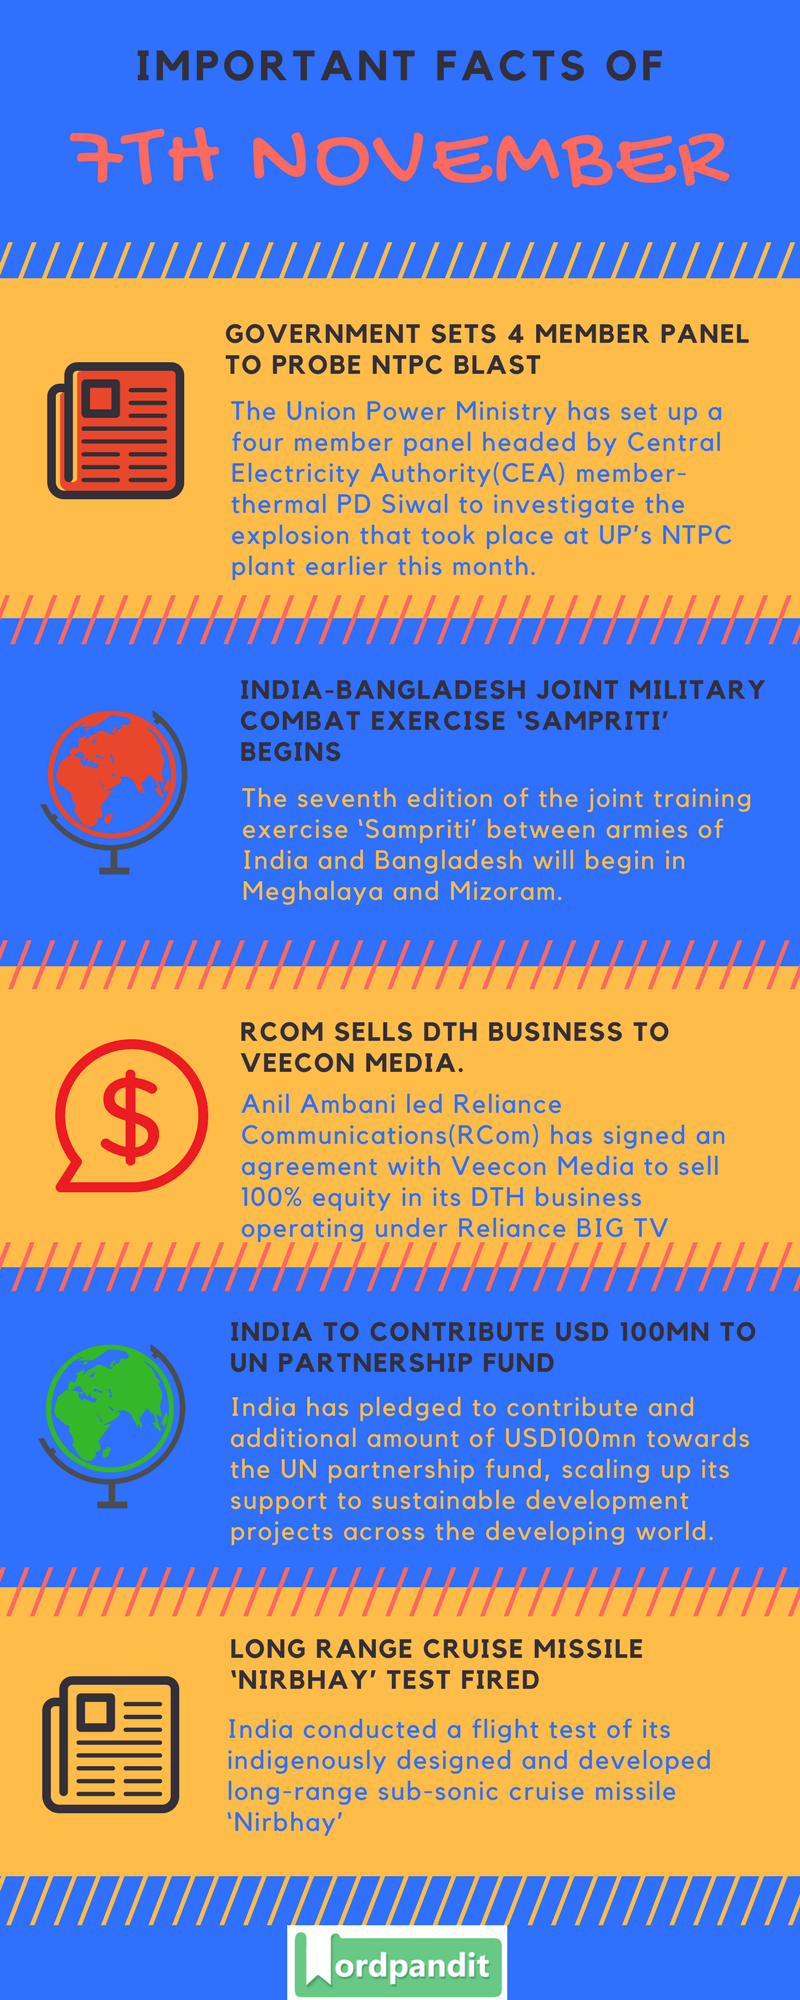 Daily-Current-Affairs-7-november-2017-Current-Affairs-Quiz-october-24-2017-Current-Affairs-Infographic